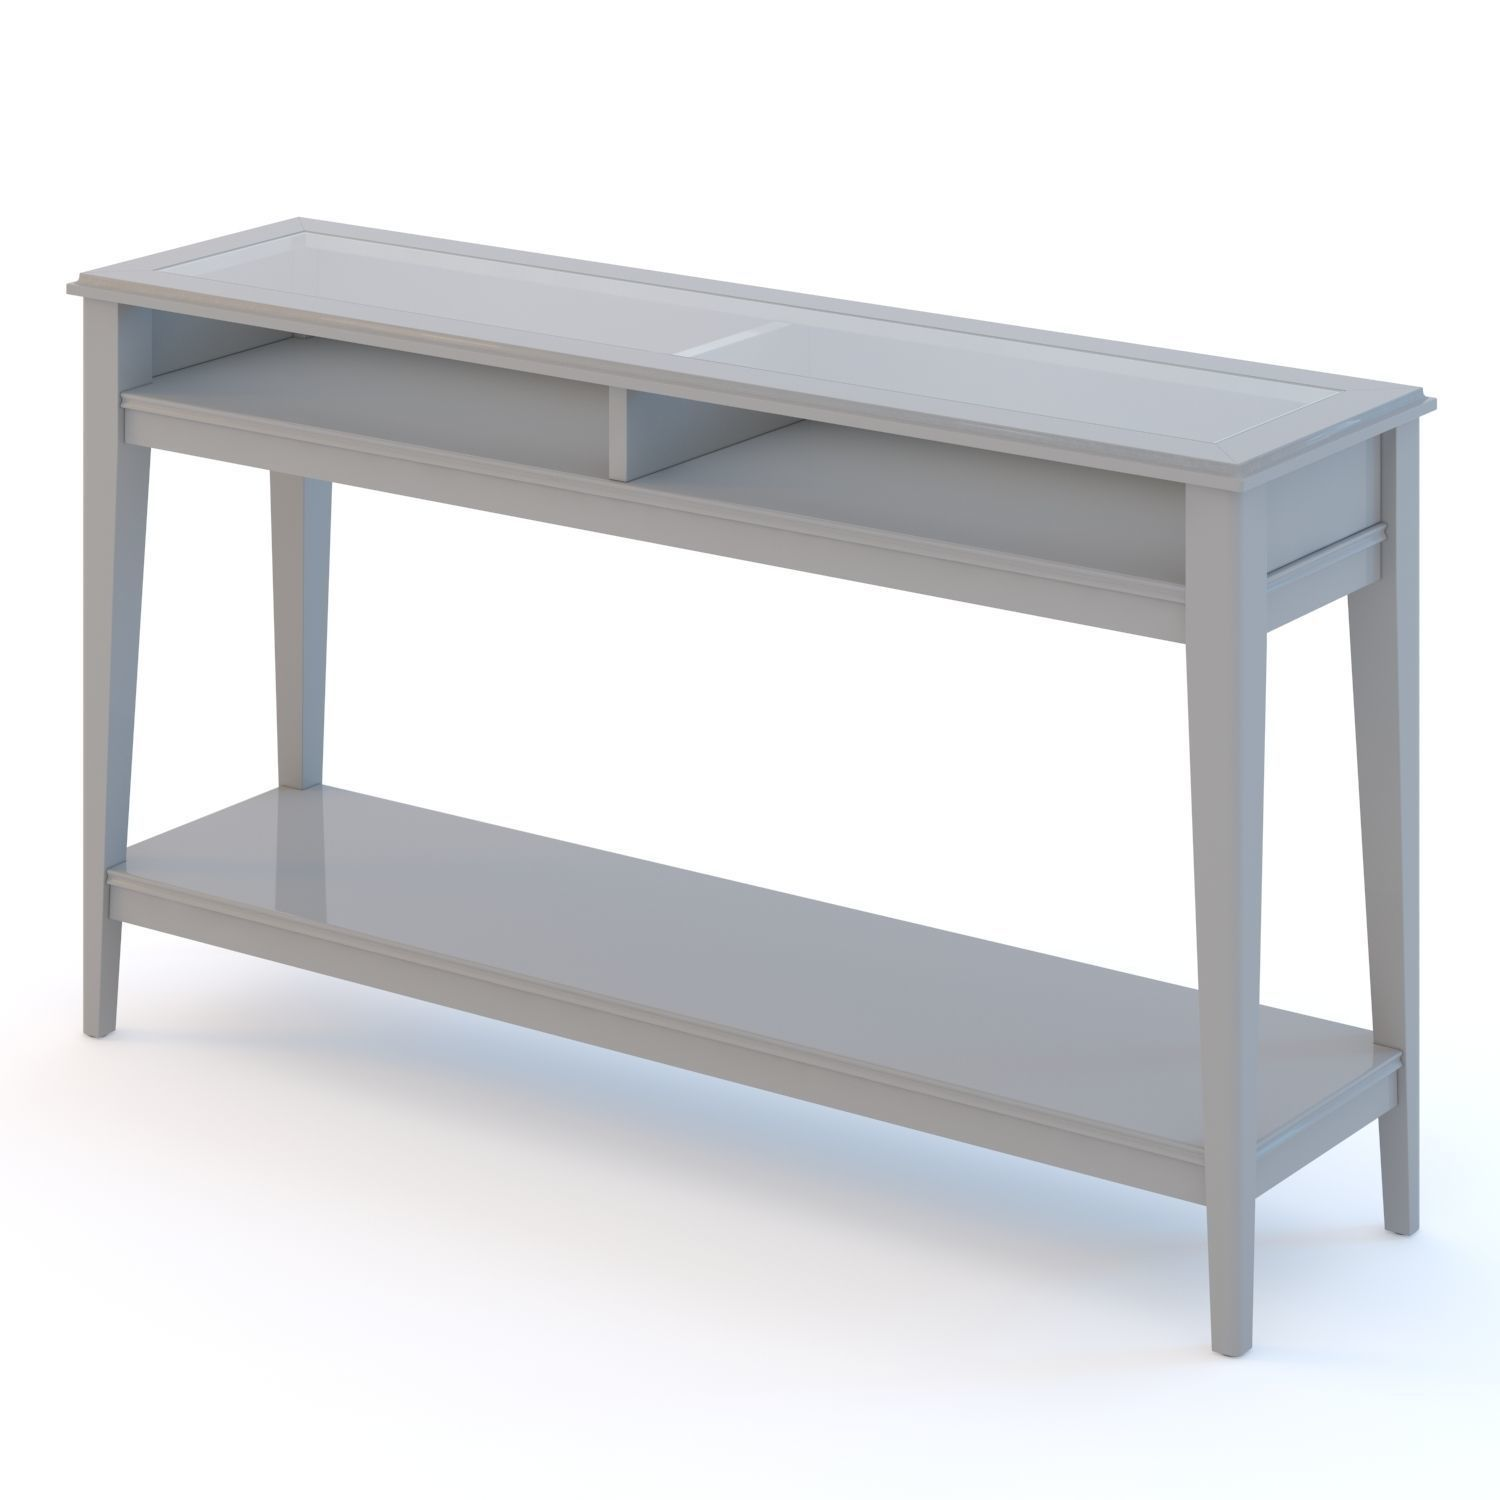 liatorp sofa table instructions beds in london gumtree review home co